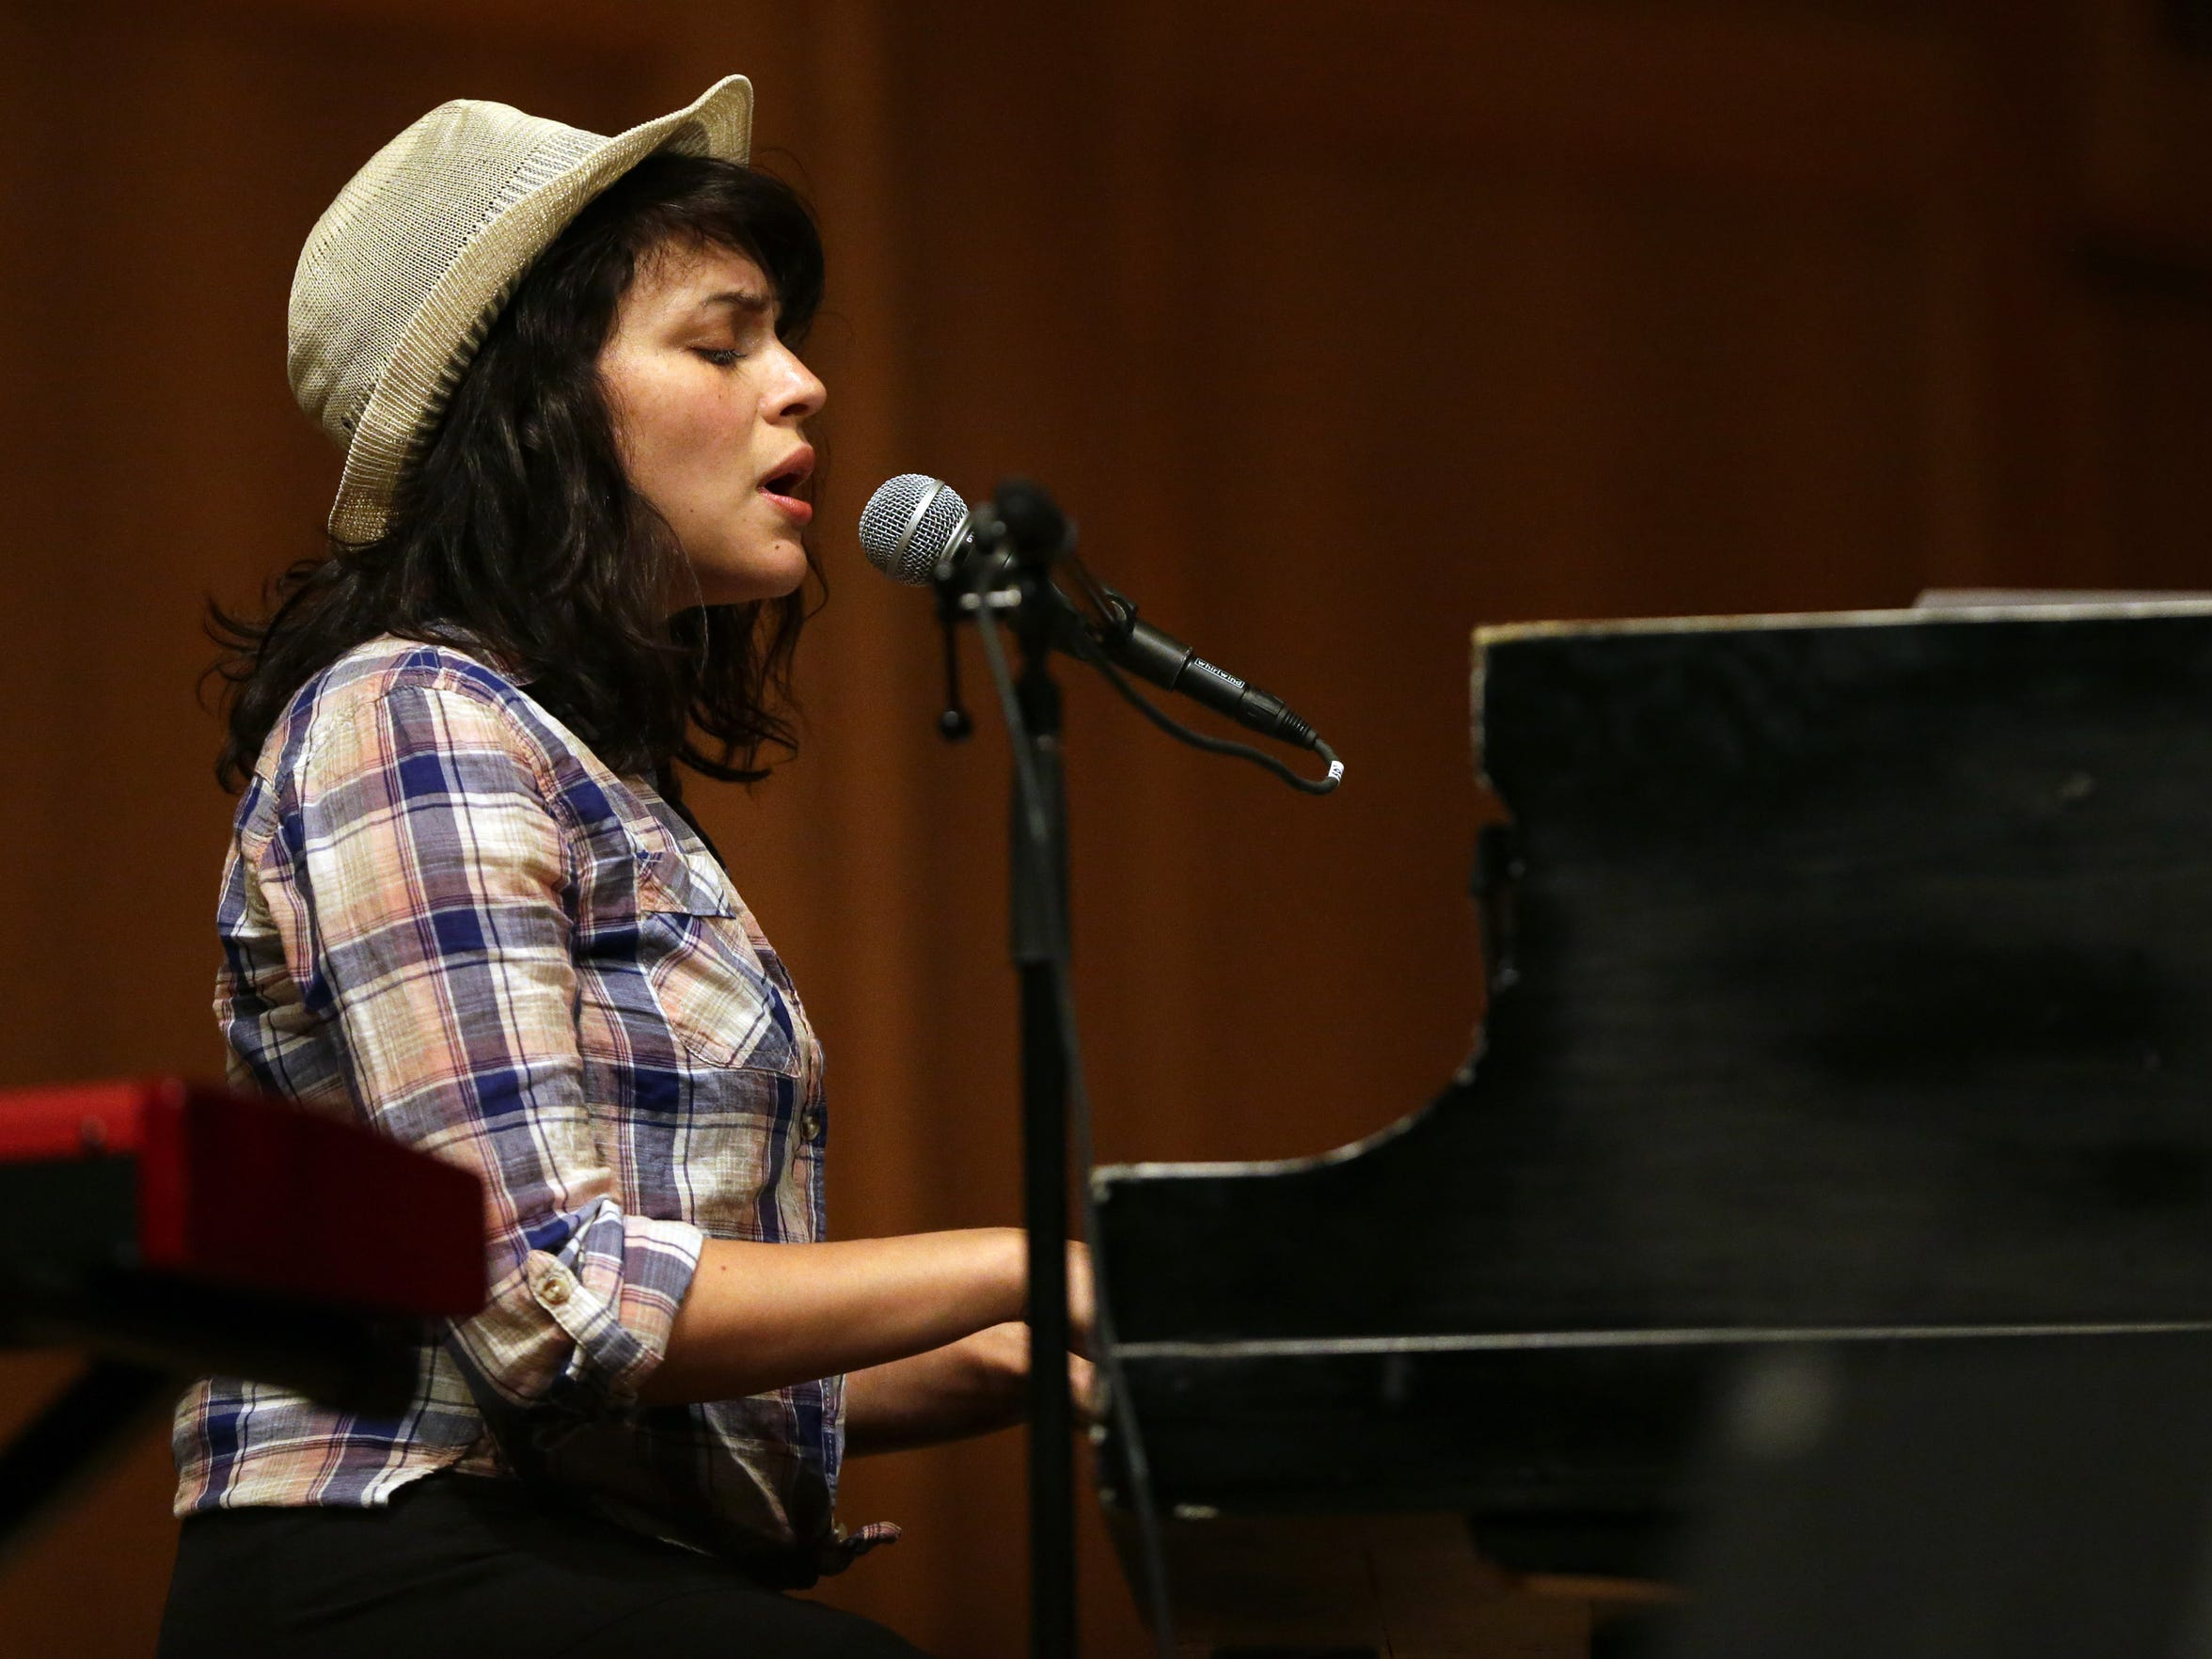 Norah Jones was a surprise guest of Mile of Music in